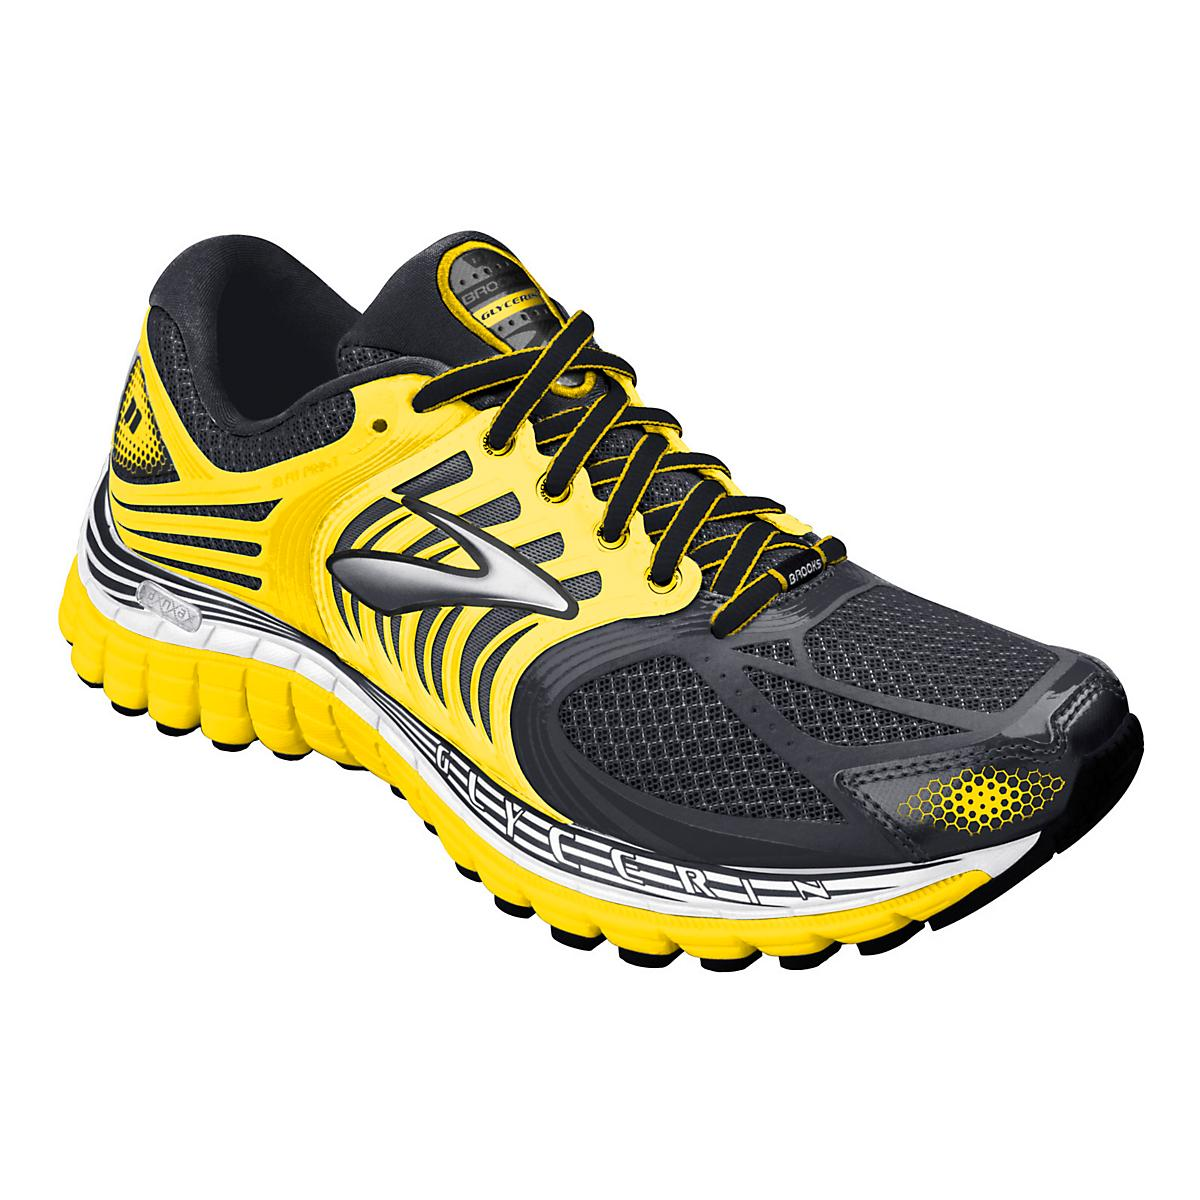 Mens Brooks Glycerin 11 Running Shoe at Road Runner Sports 469fb75c5